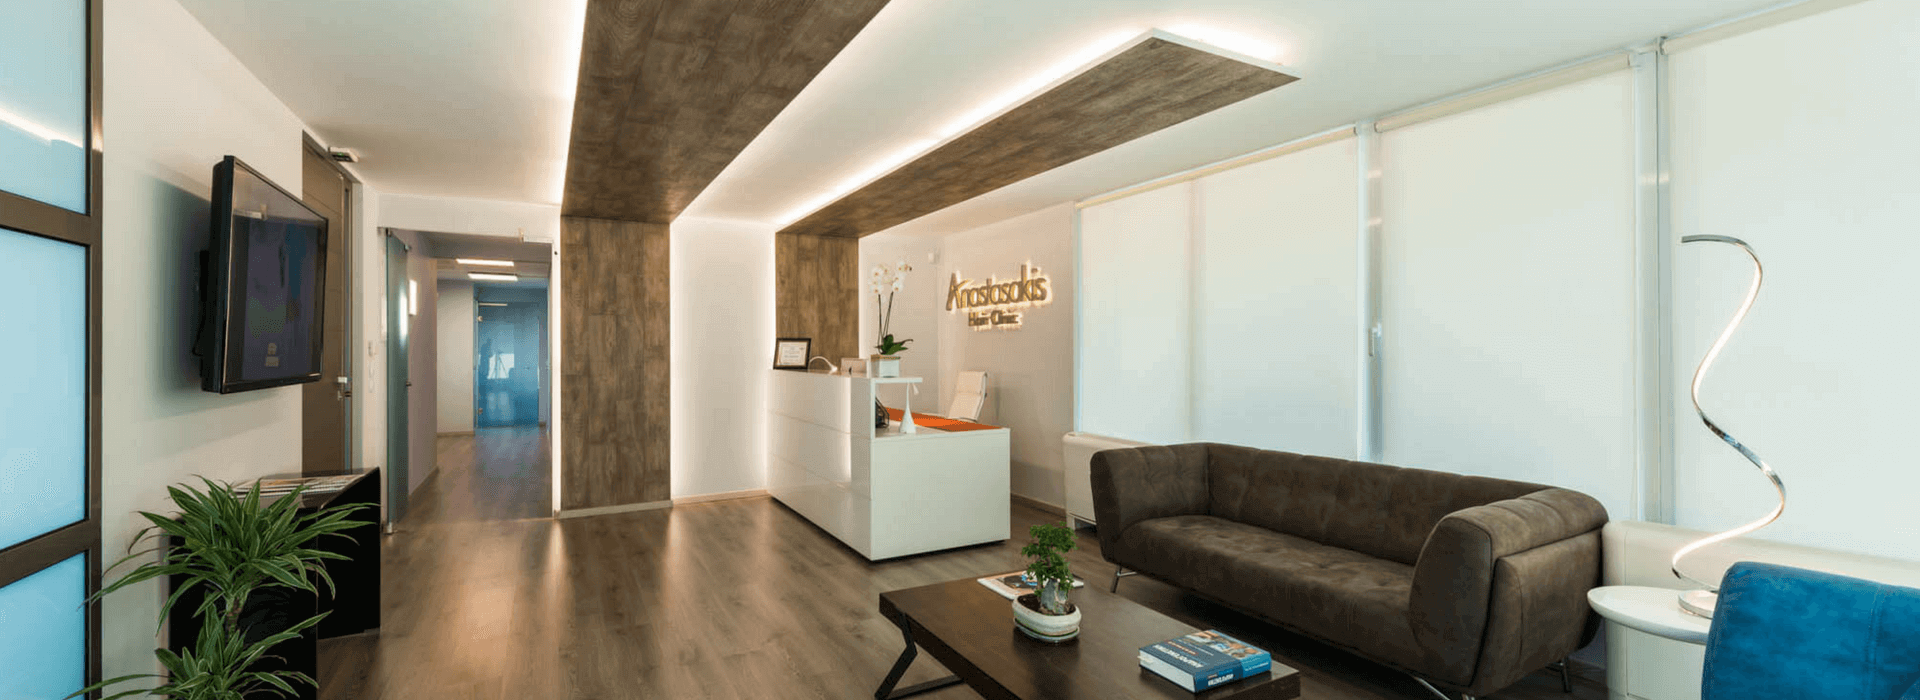 anastasakis-hair-clinic